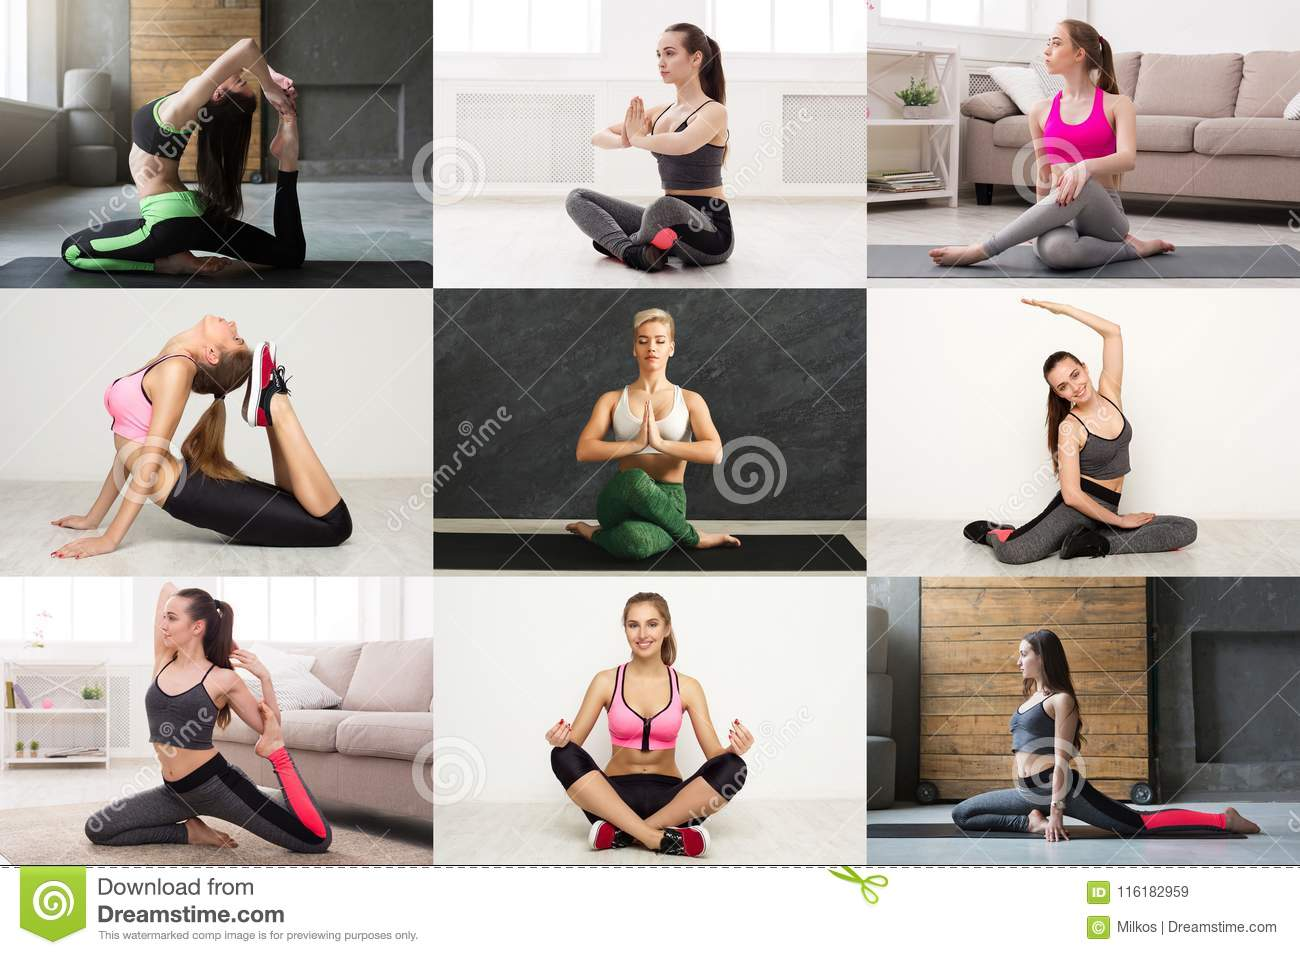 Forum on this topic: The Difference of Yoga at the Gym , the-difference-of-yoga-at-the-gym/